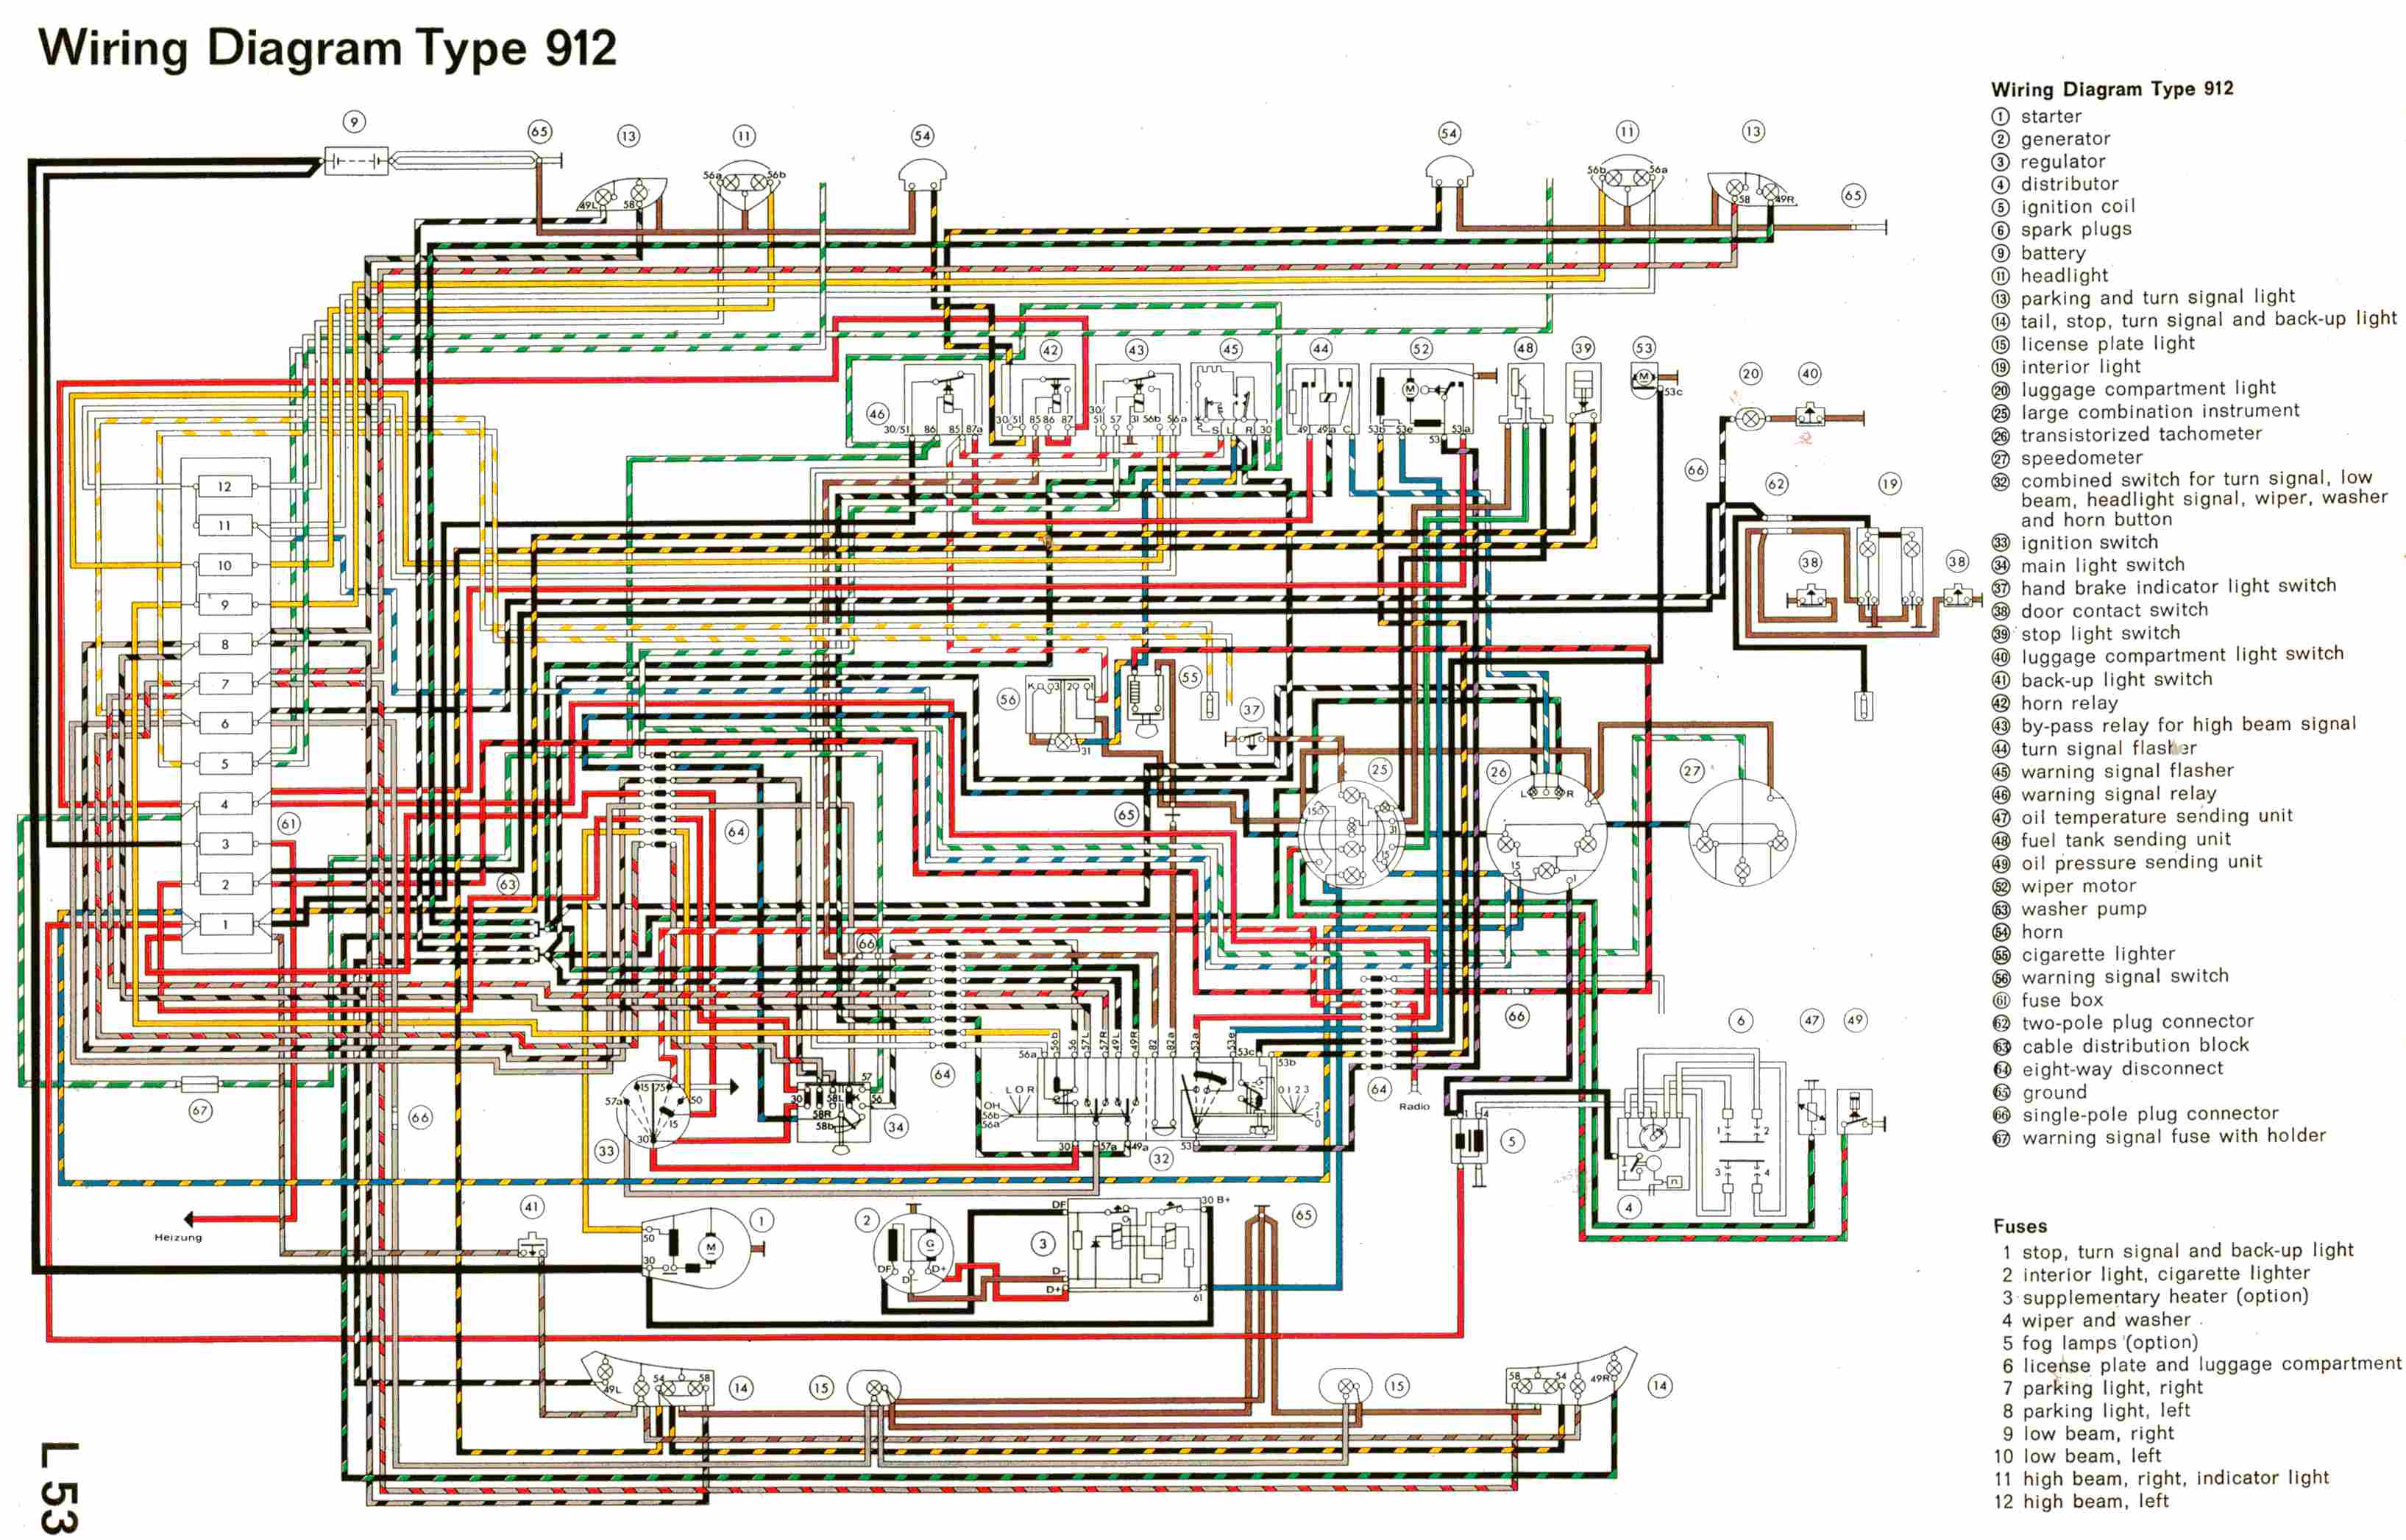 complete electrical wiring diagram of porsche type 912?resized665%2C4266ssld1 porsche 914 wiring diagram efcaviation com fuse box diagram 1975 porsche 914 at crackthecode.co